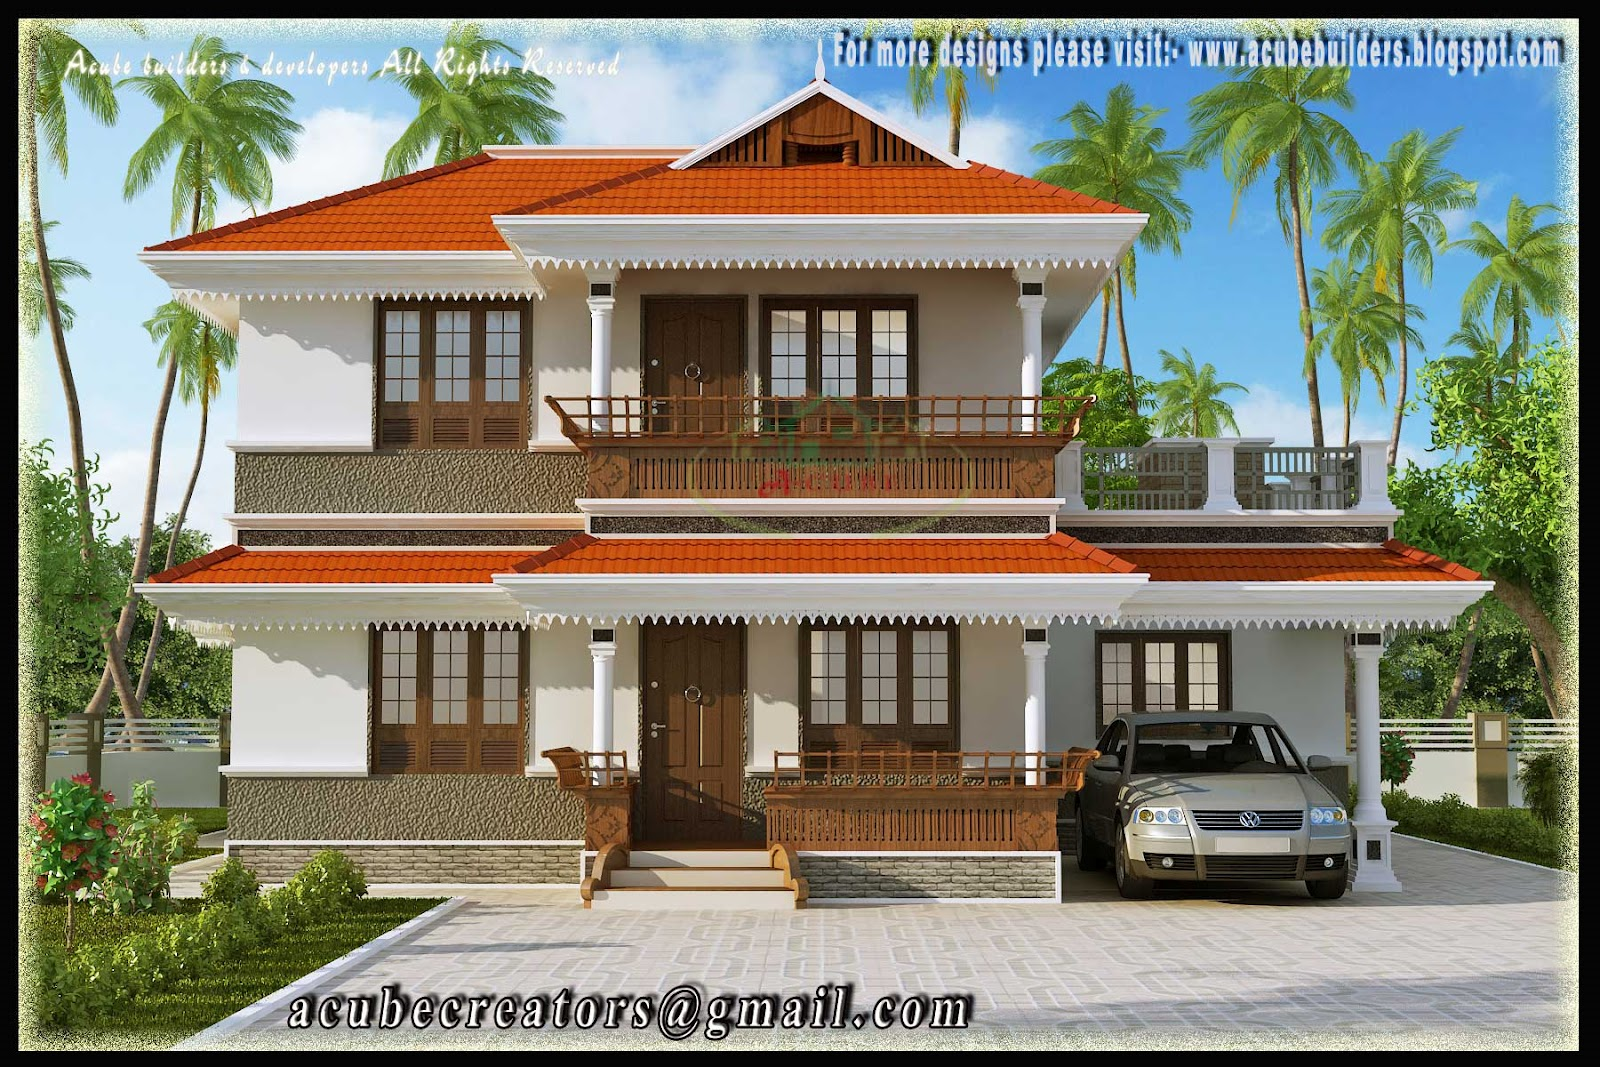 Kerala Style Low Cost Double Storied Home: Beautiful Kerala Style 2 Storey House